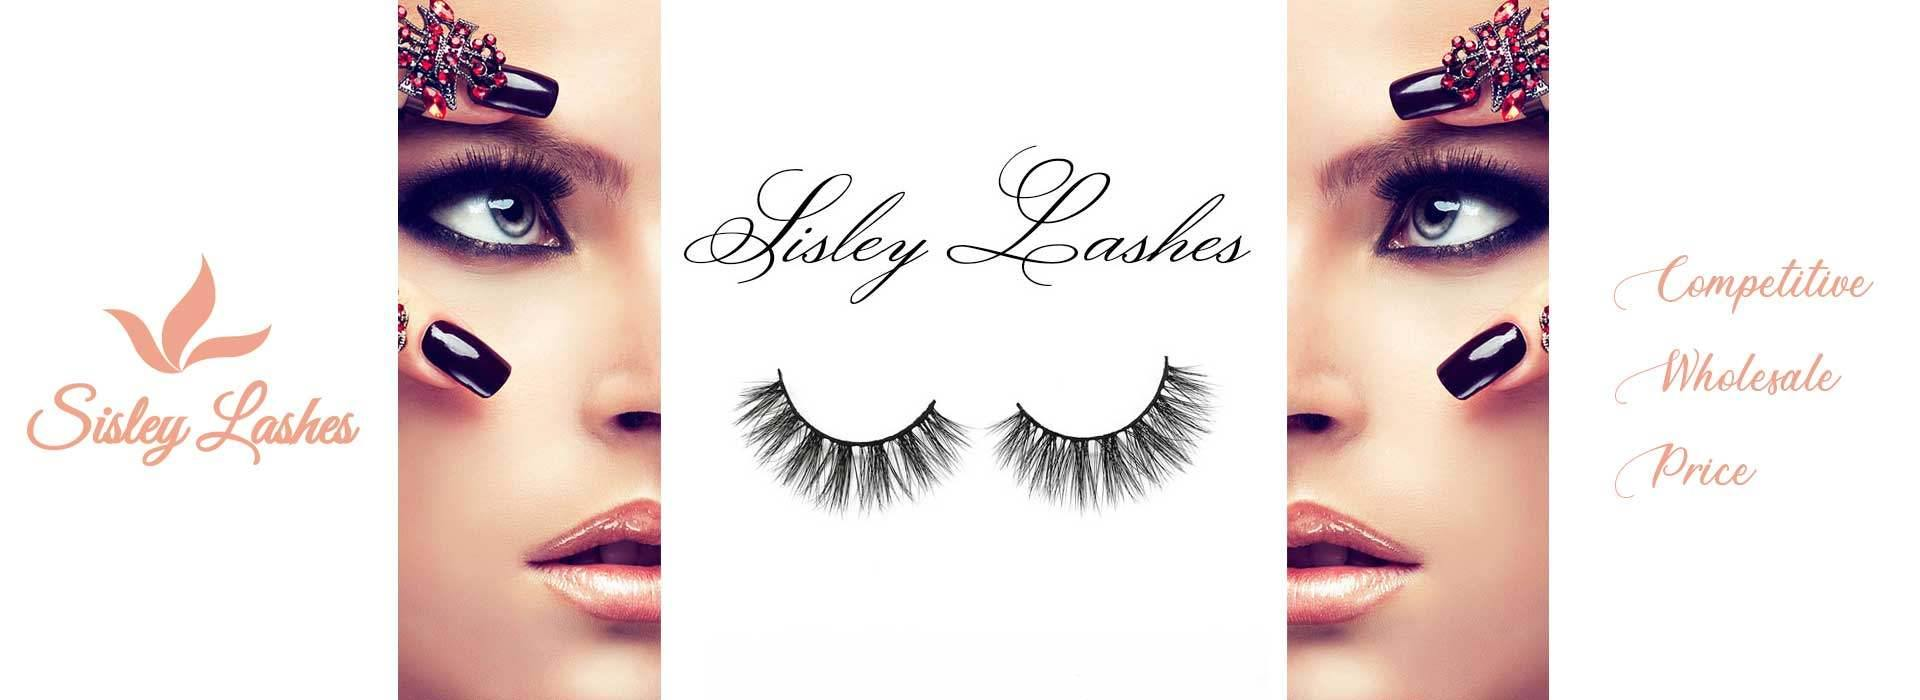 wholesale mink lashes vendor Sisley Lashese(2)